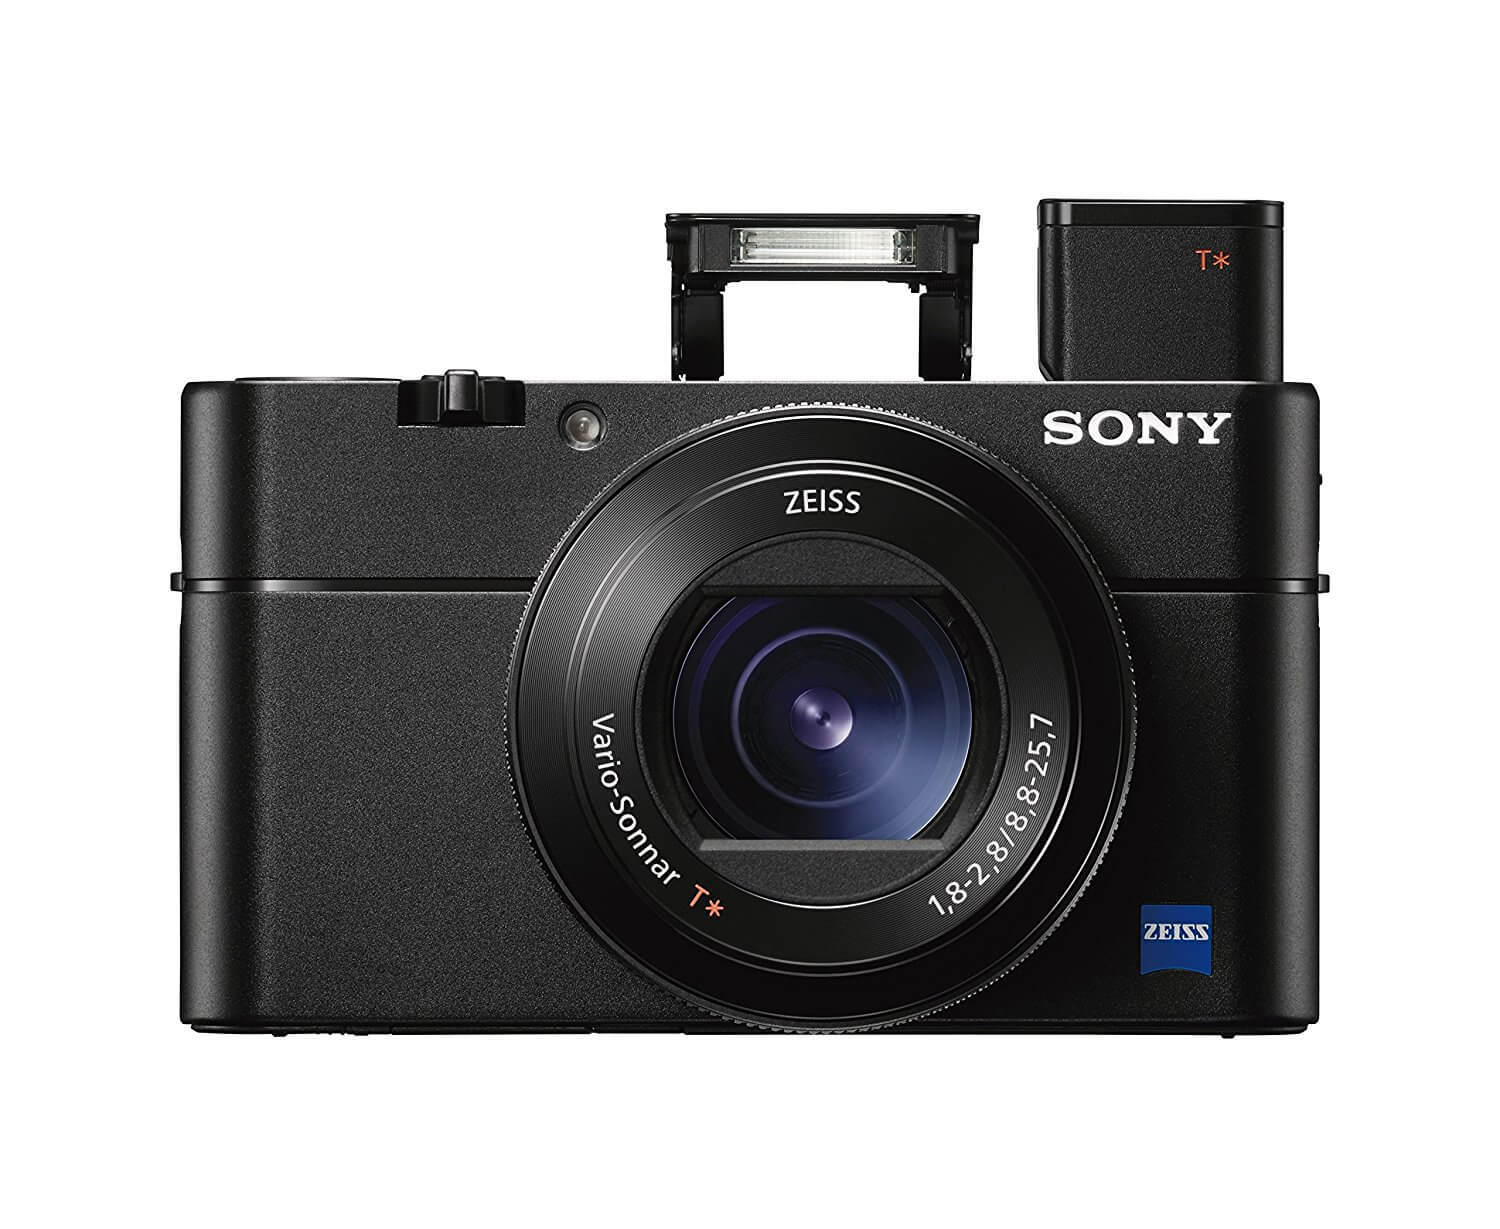 Best Compact Cameras for Professional Photographers (Sony Cyber-shot DSC-RX100 V 20.1 MP Digital Still Camera)